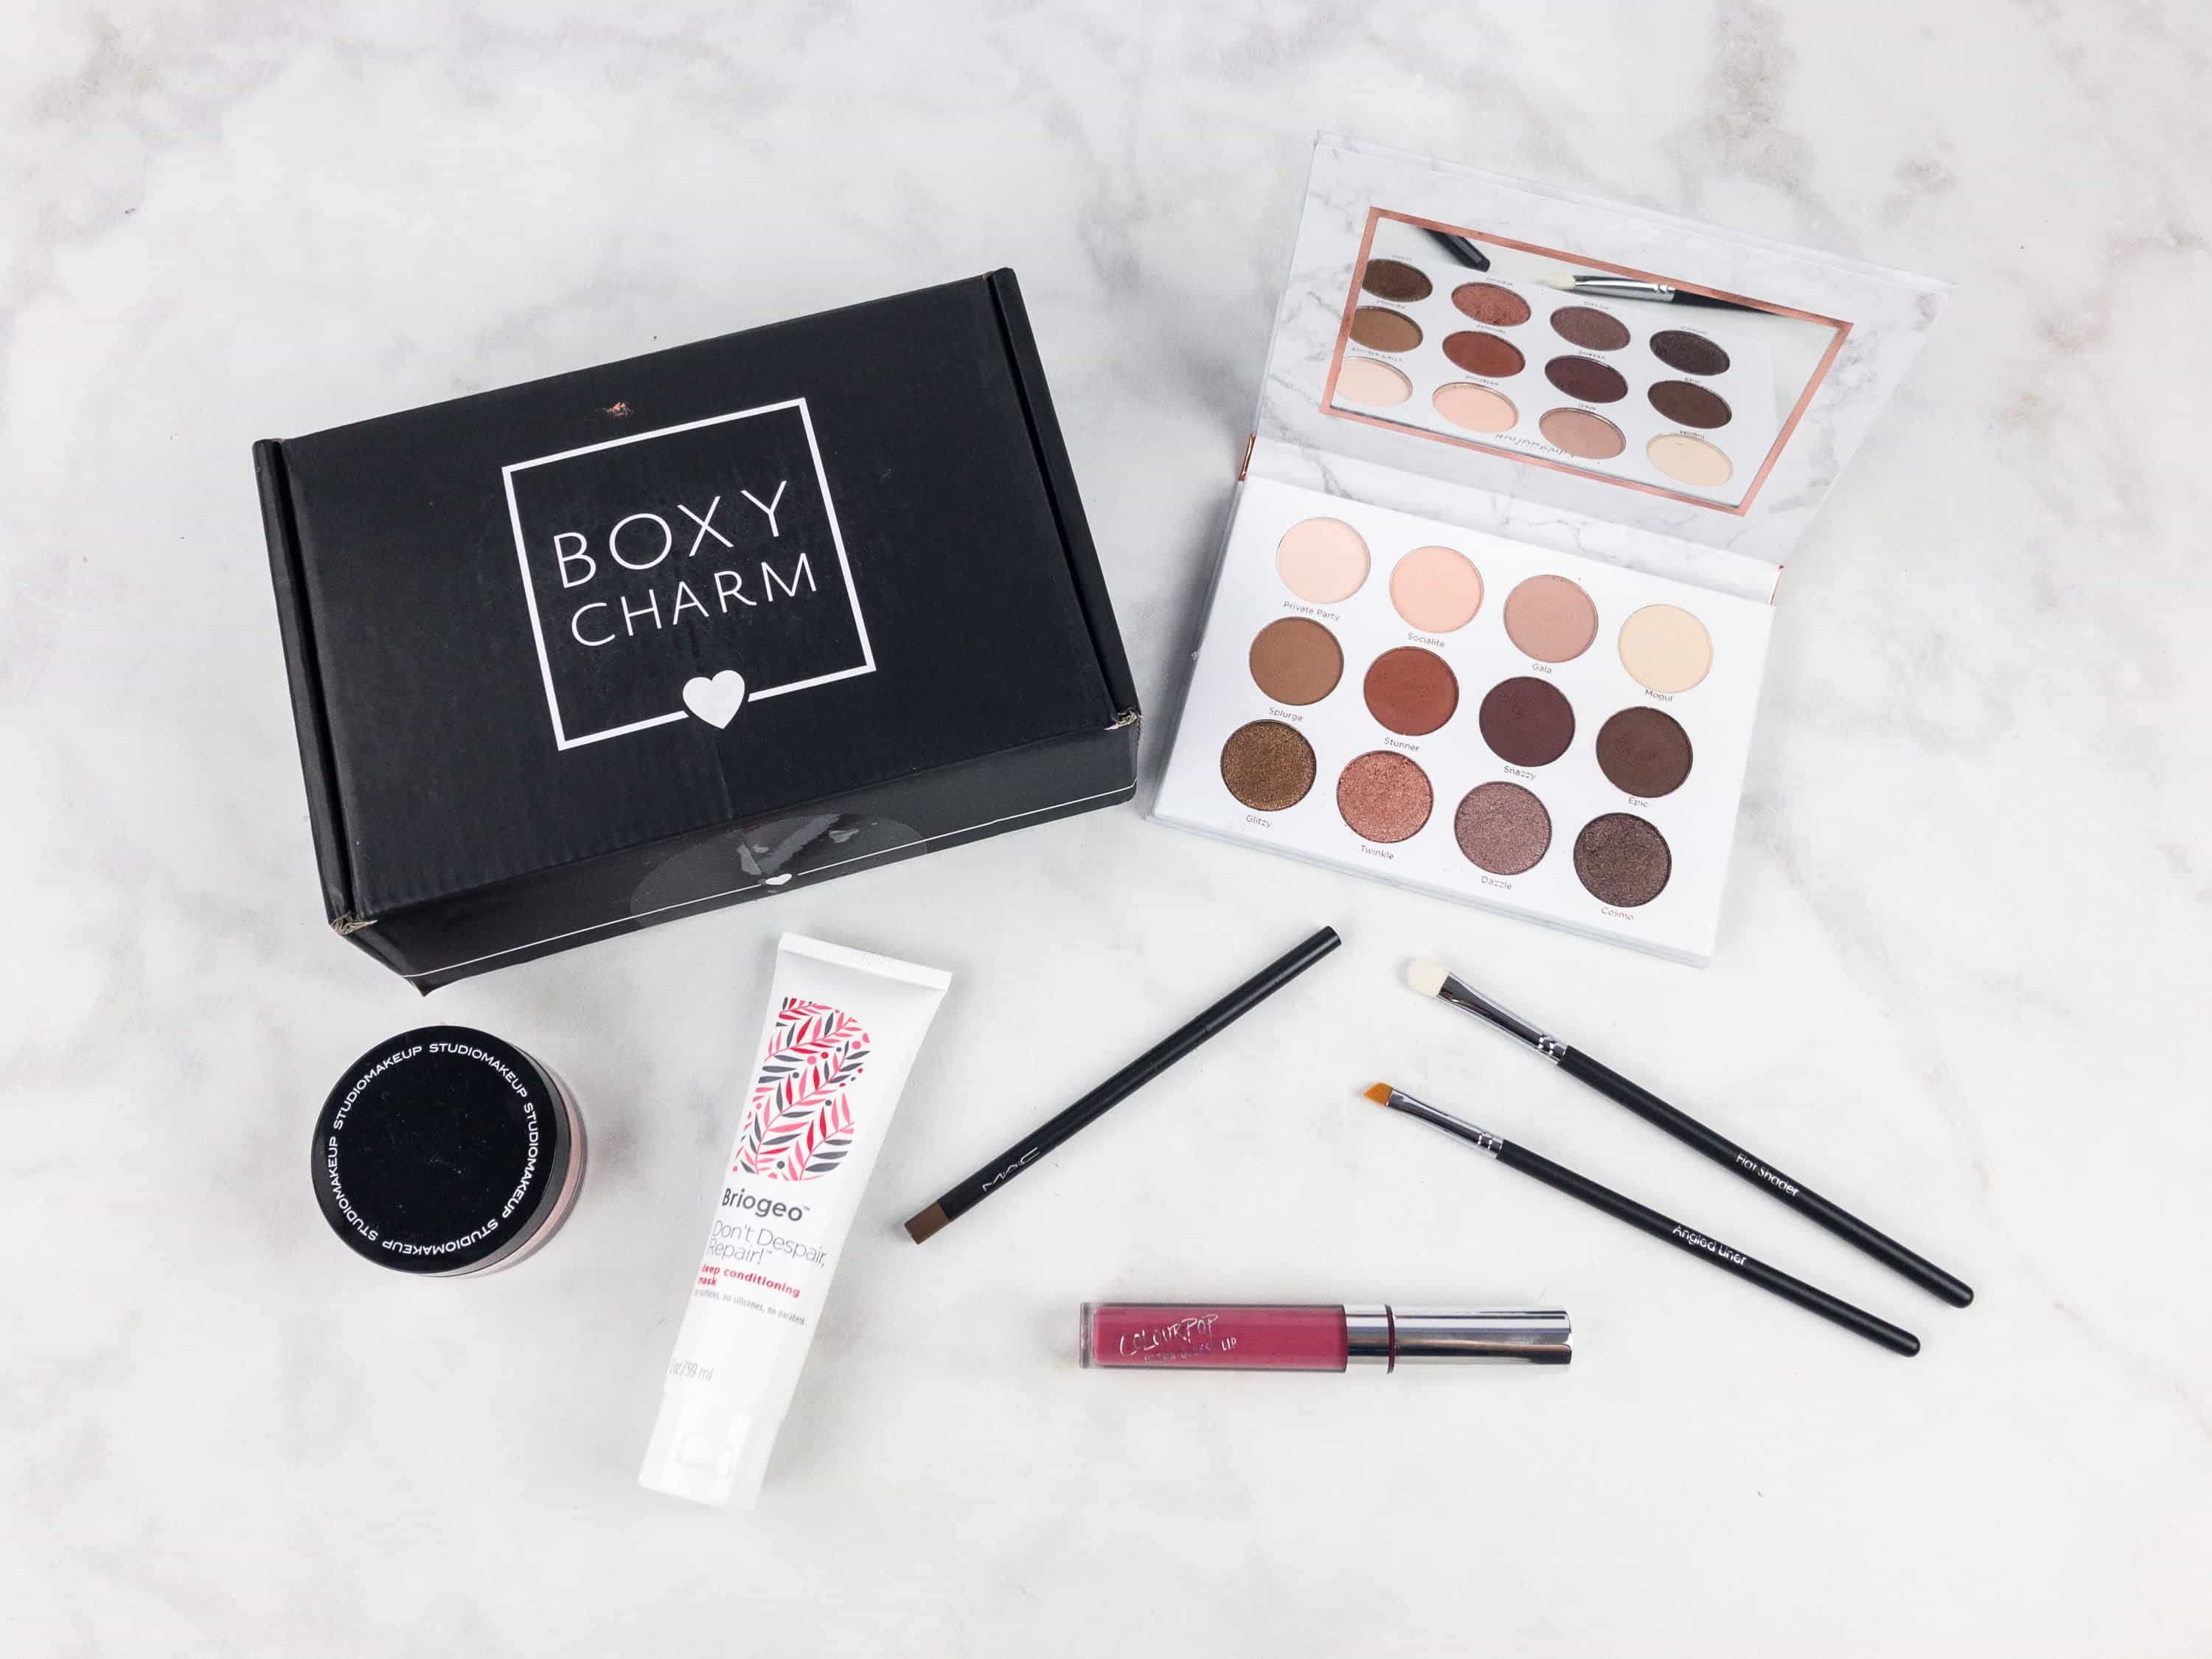 September 2017 Boxycharm Giveaway!